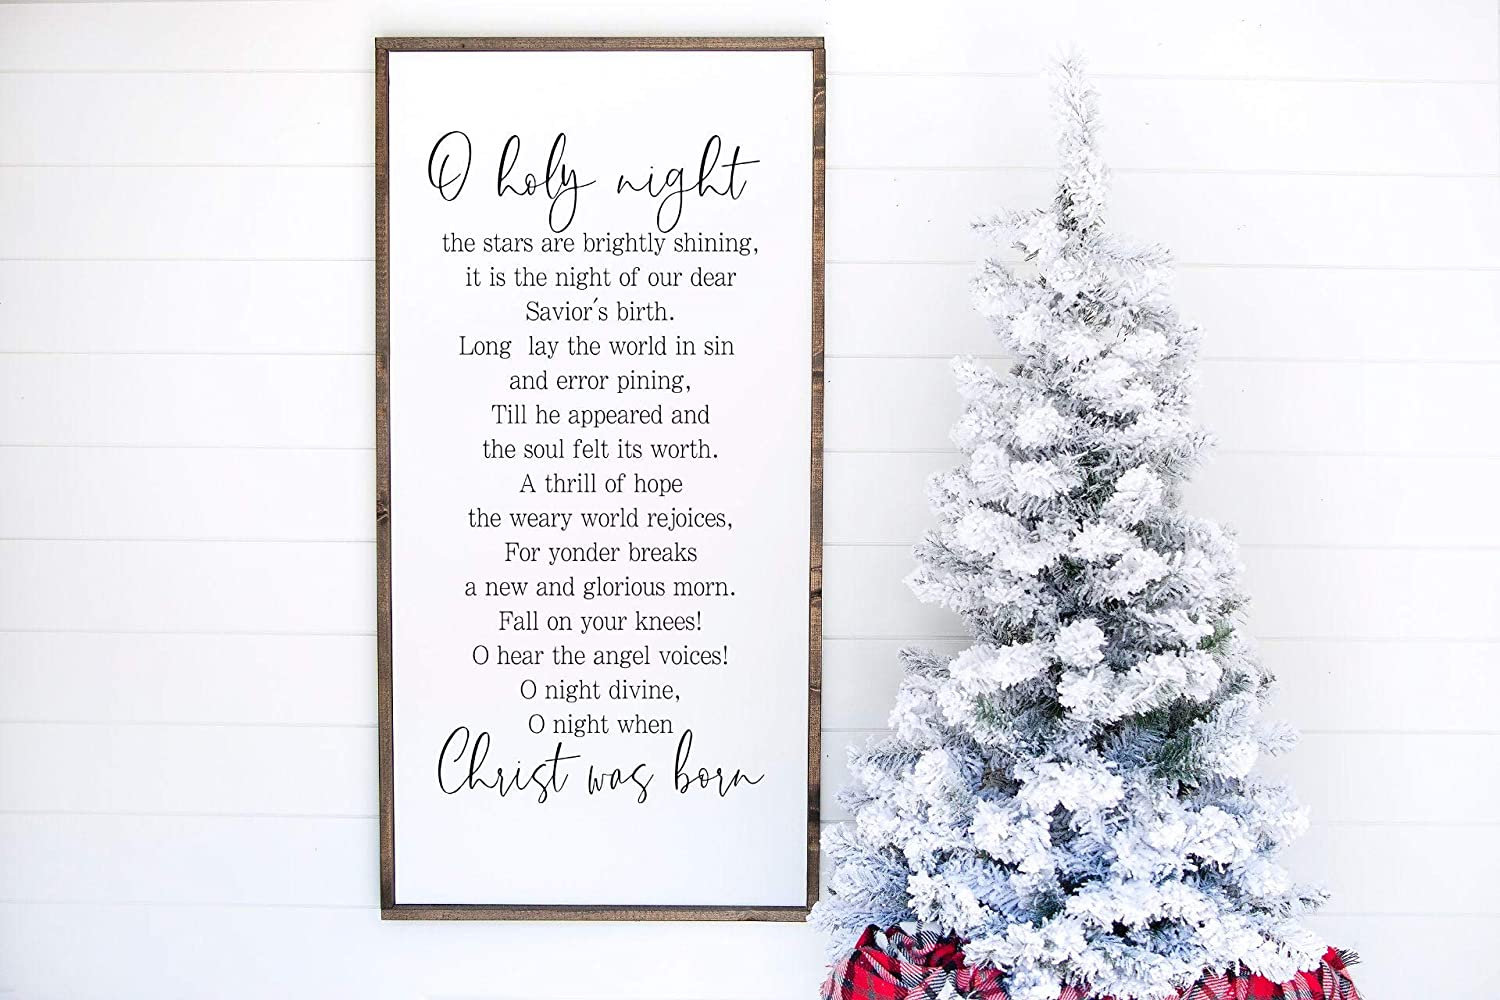 VinMea Framed Wood Sign,Oh Holy Night Wall Art Wooden Wall Hanging Art,Inspirational Farmhouse Wall Plaque,Decor Gallery 30x45cm